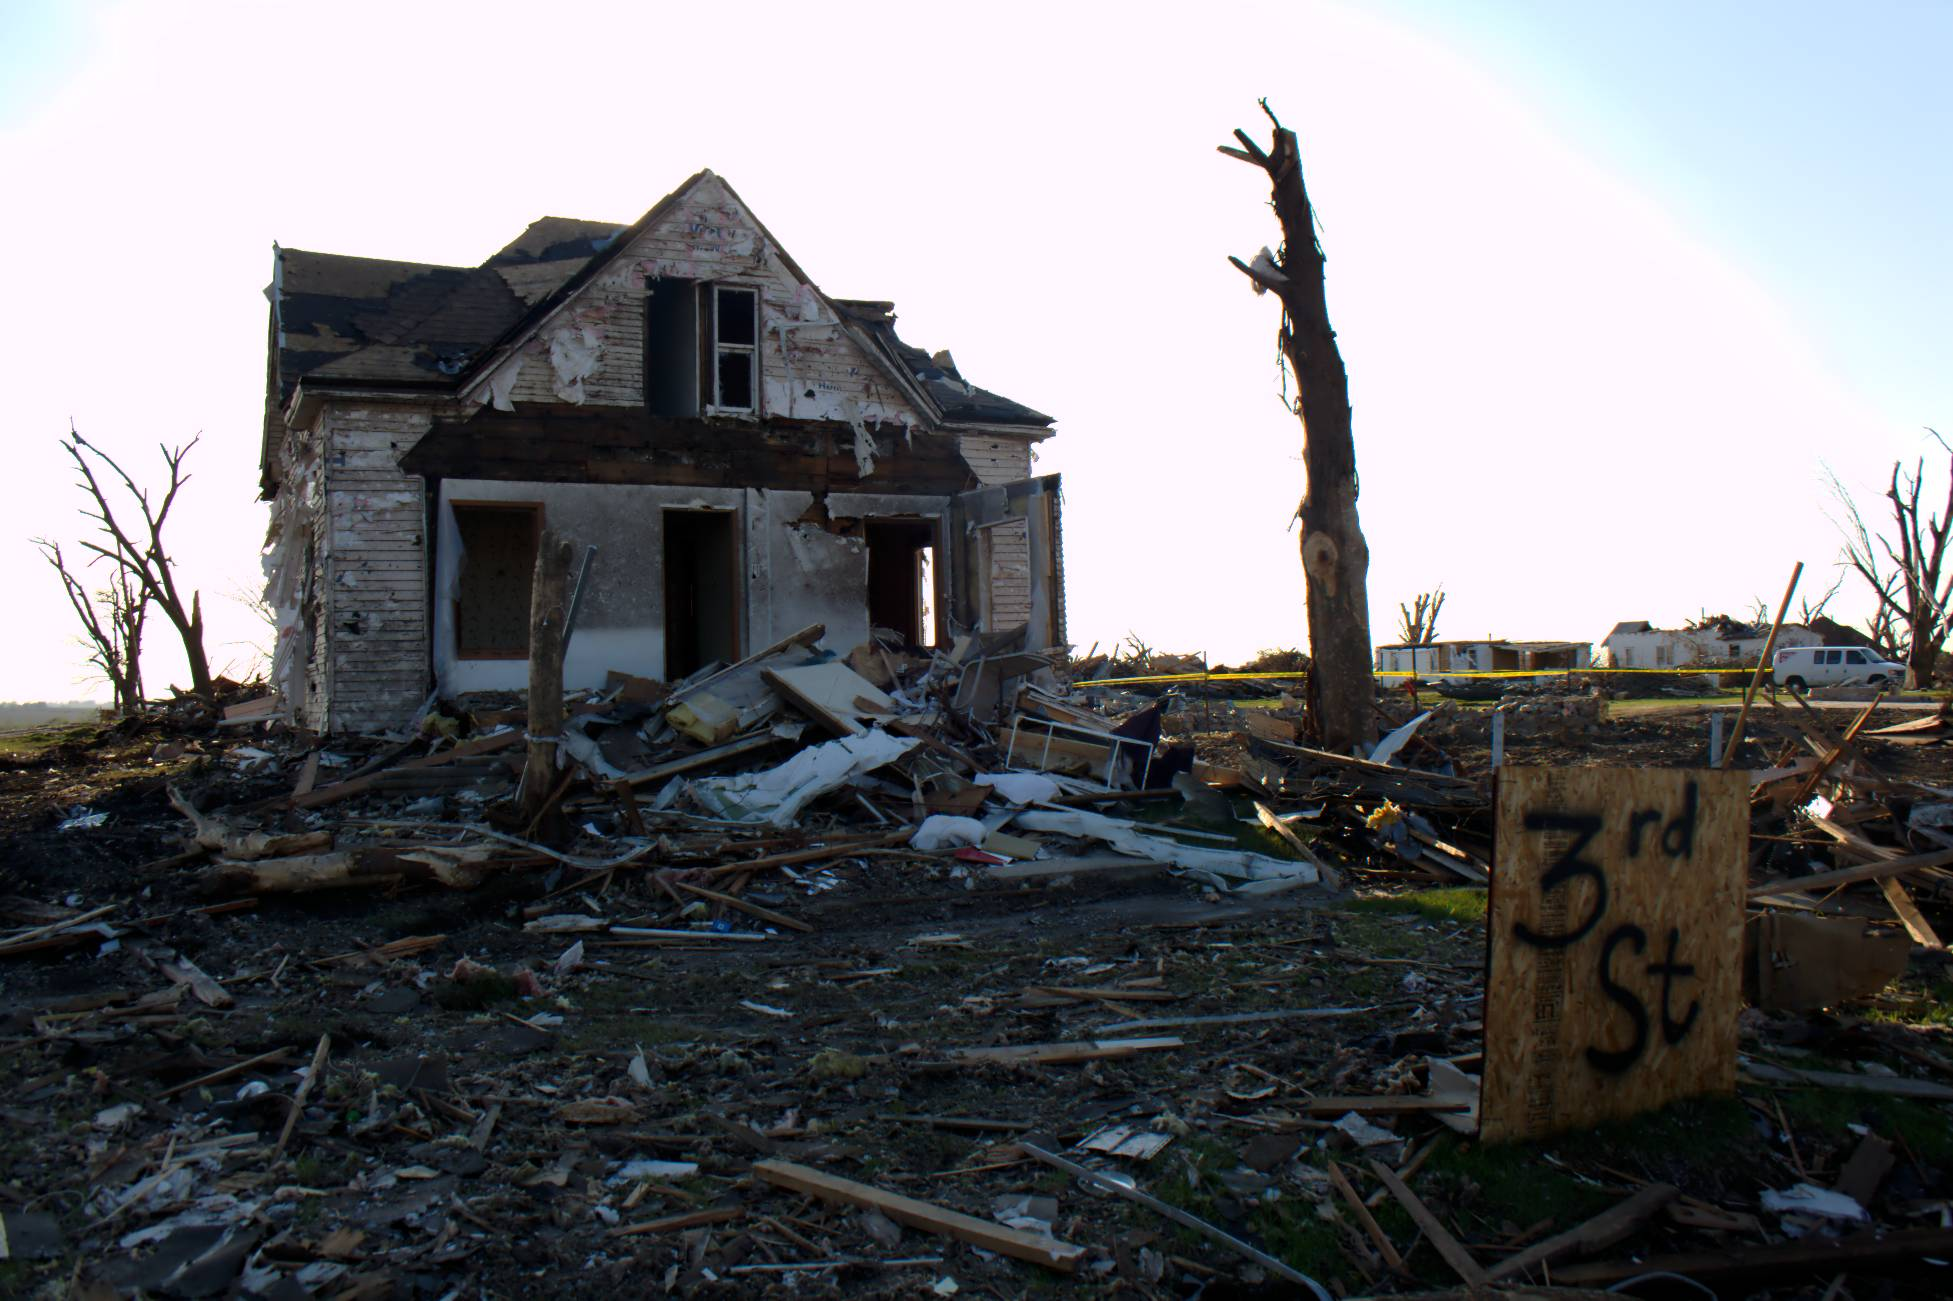 File:Tornado Destroyed House in Parkersburg, Iowa.jpg ...